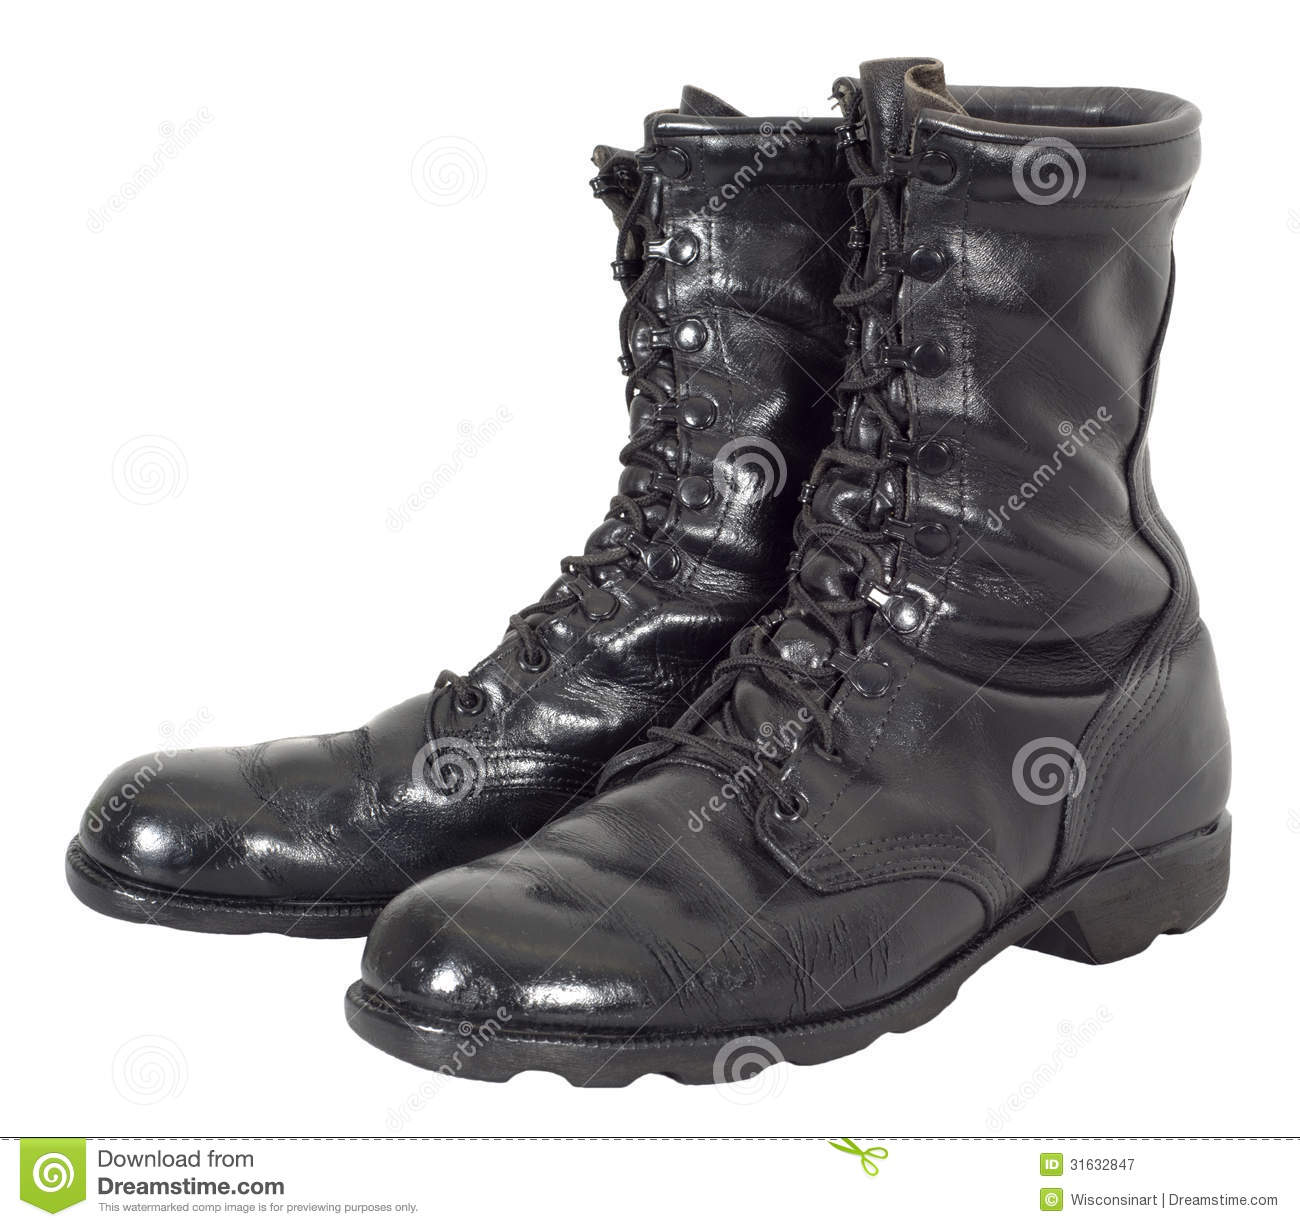 Army Boots Clipart Black Army Boots Isolated